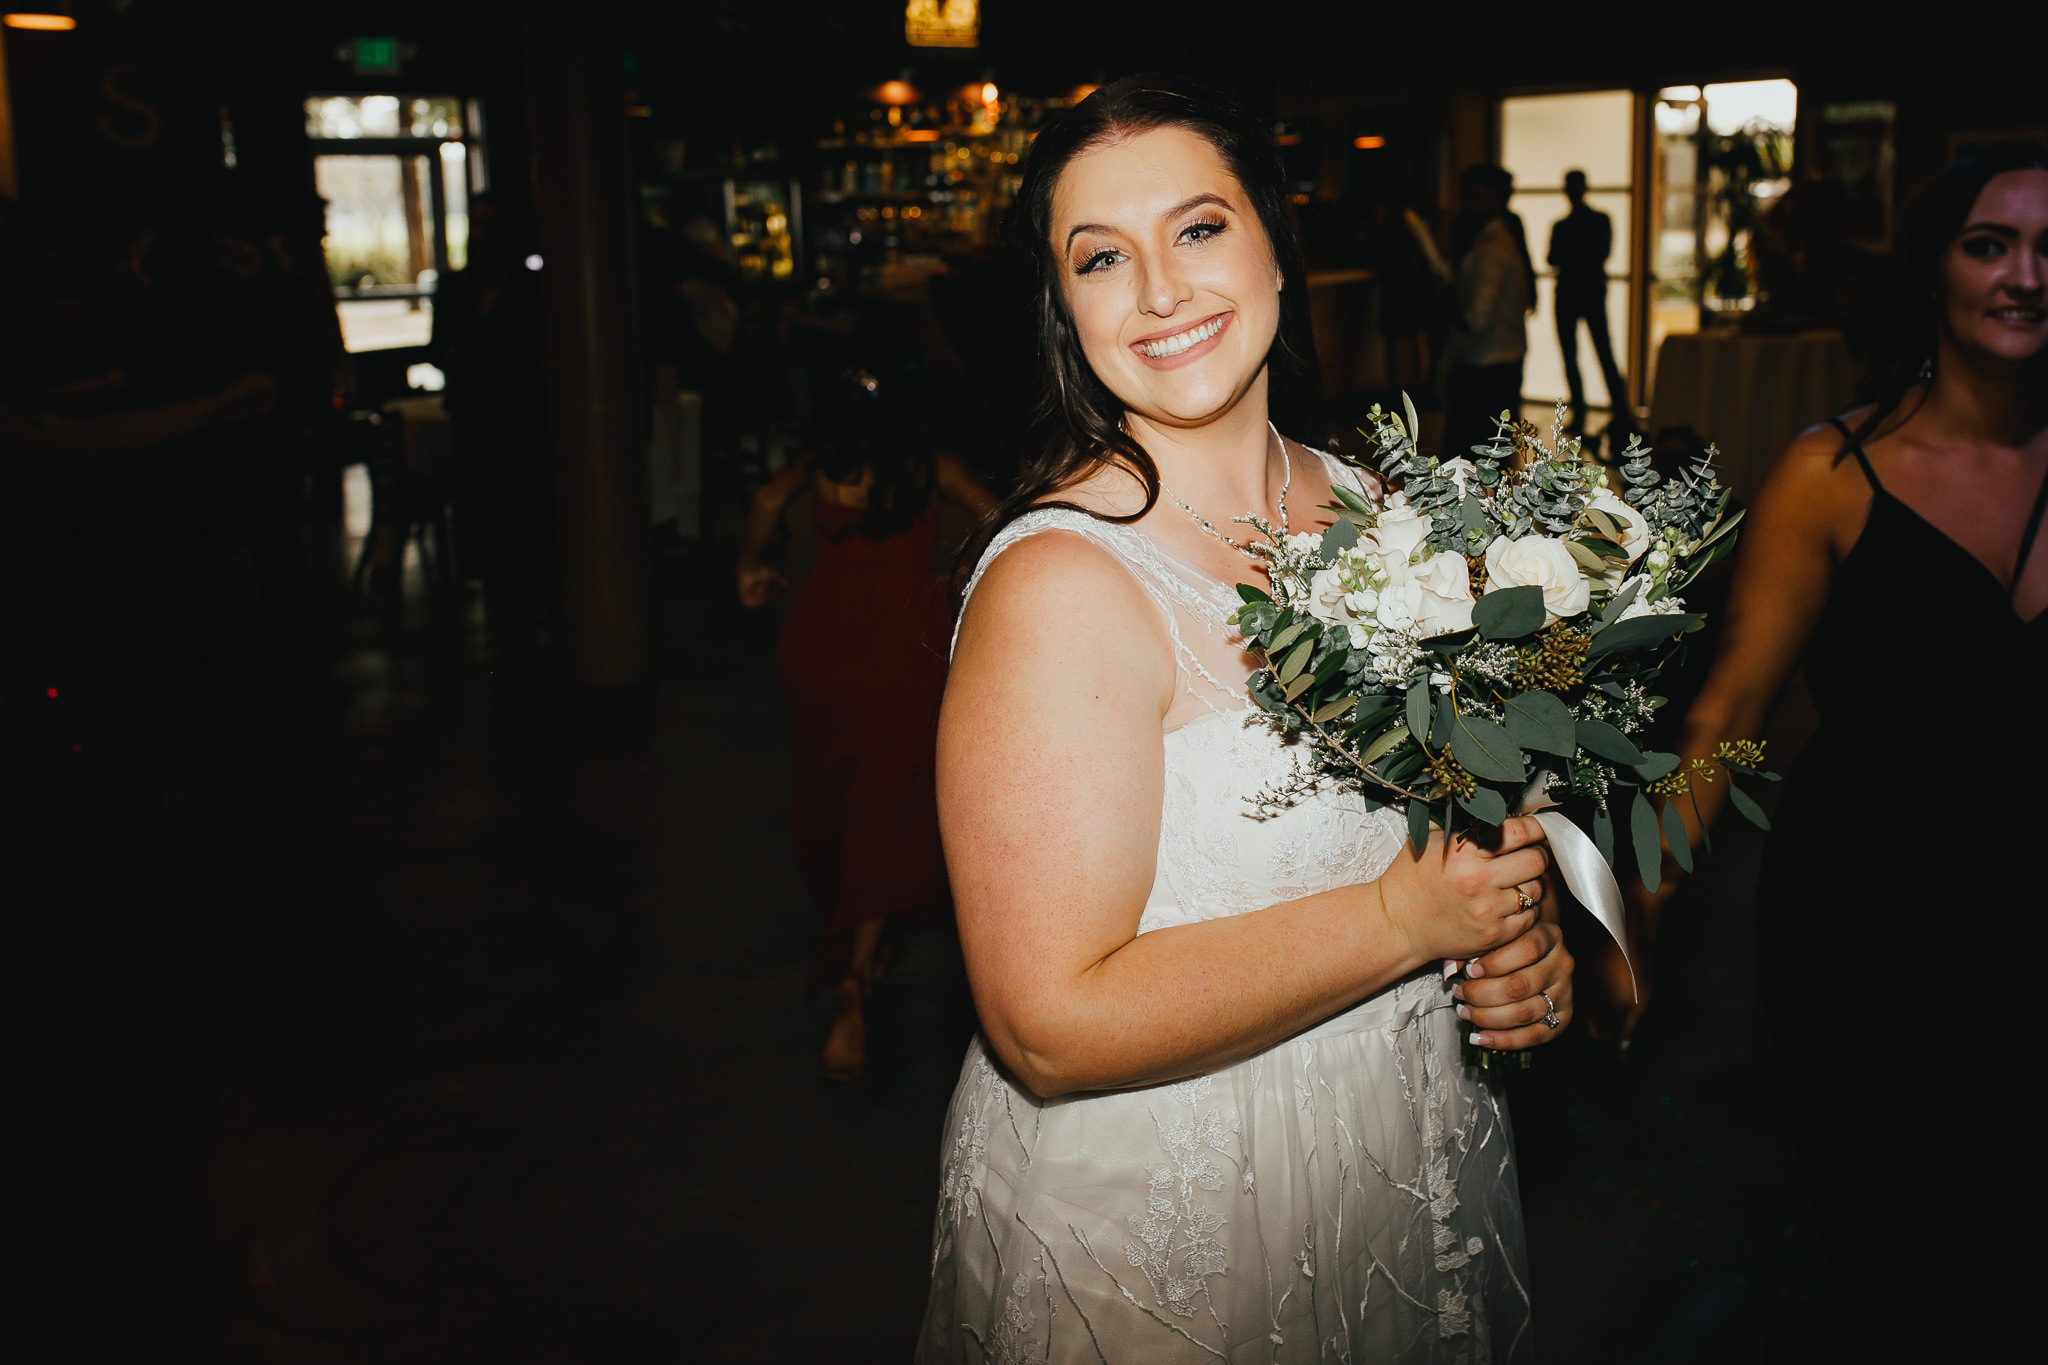 Archer Inspired Photography Shelby and Ben Wedding Sally Tomatoes NorCal Rohnert Park California-75.jpg